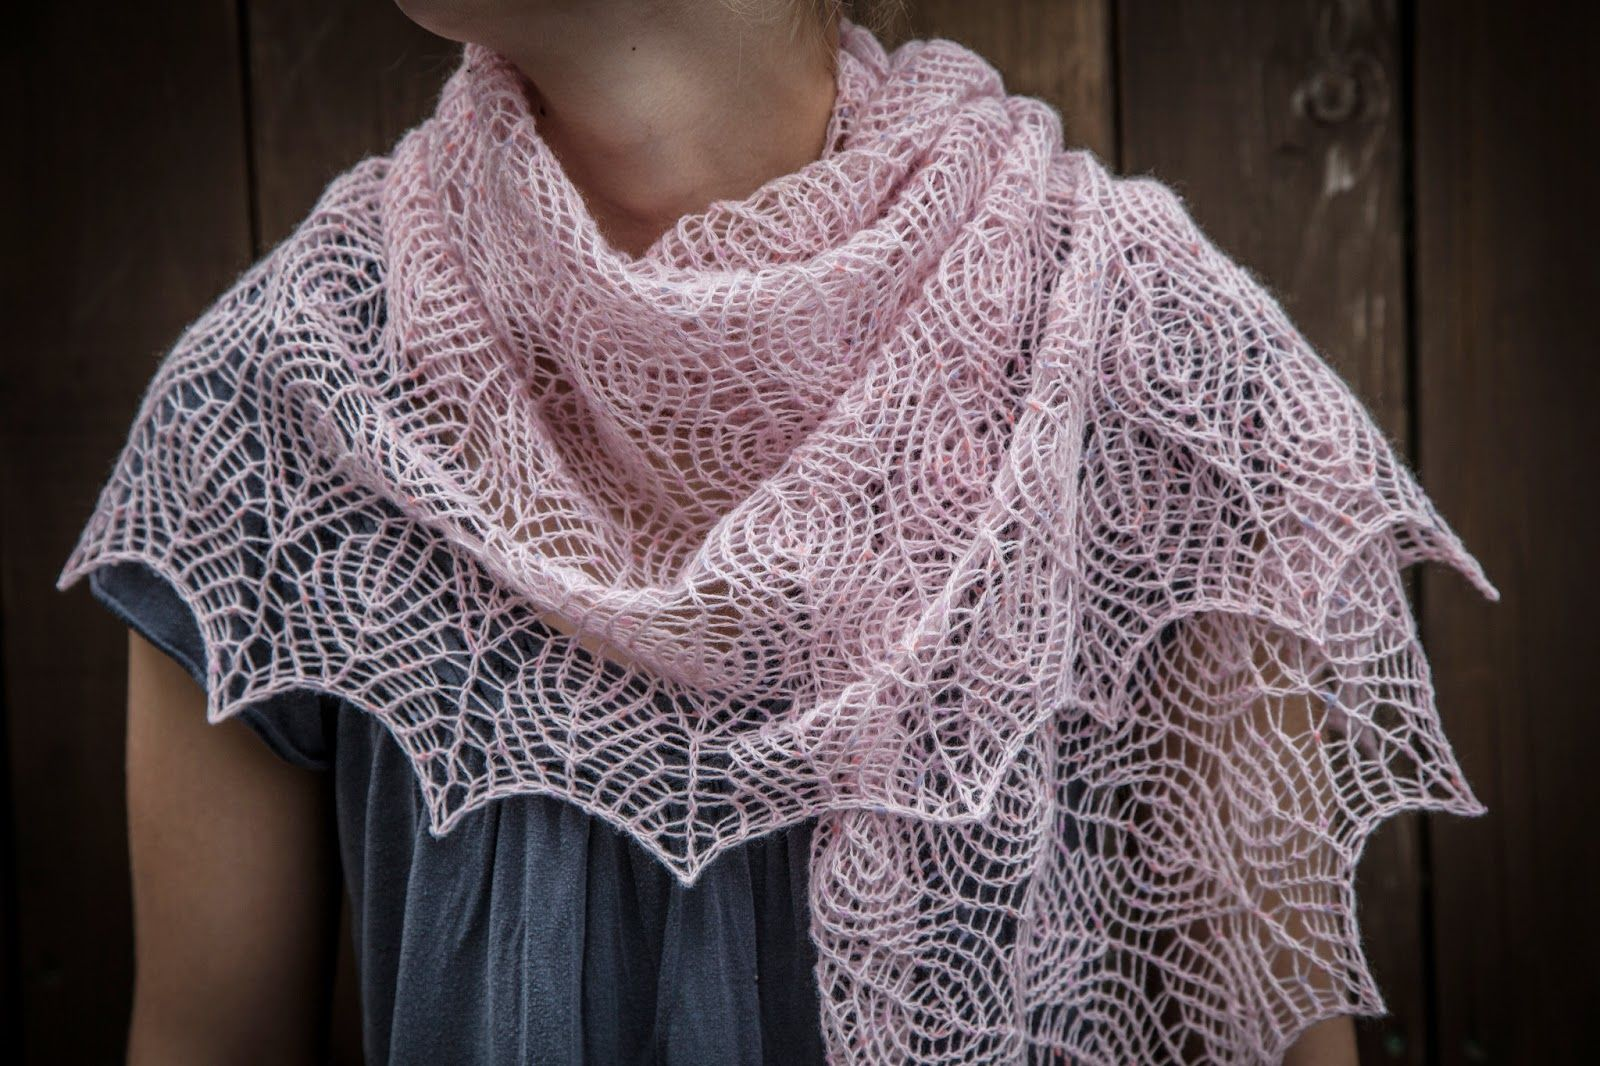 Knitting Patterns For Triangle Scarves : Shetland Knitting Patterns Shetland Lace Triangle Shawl Shetland lace P...